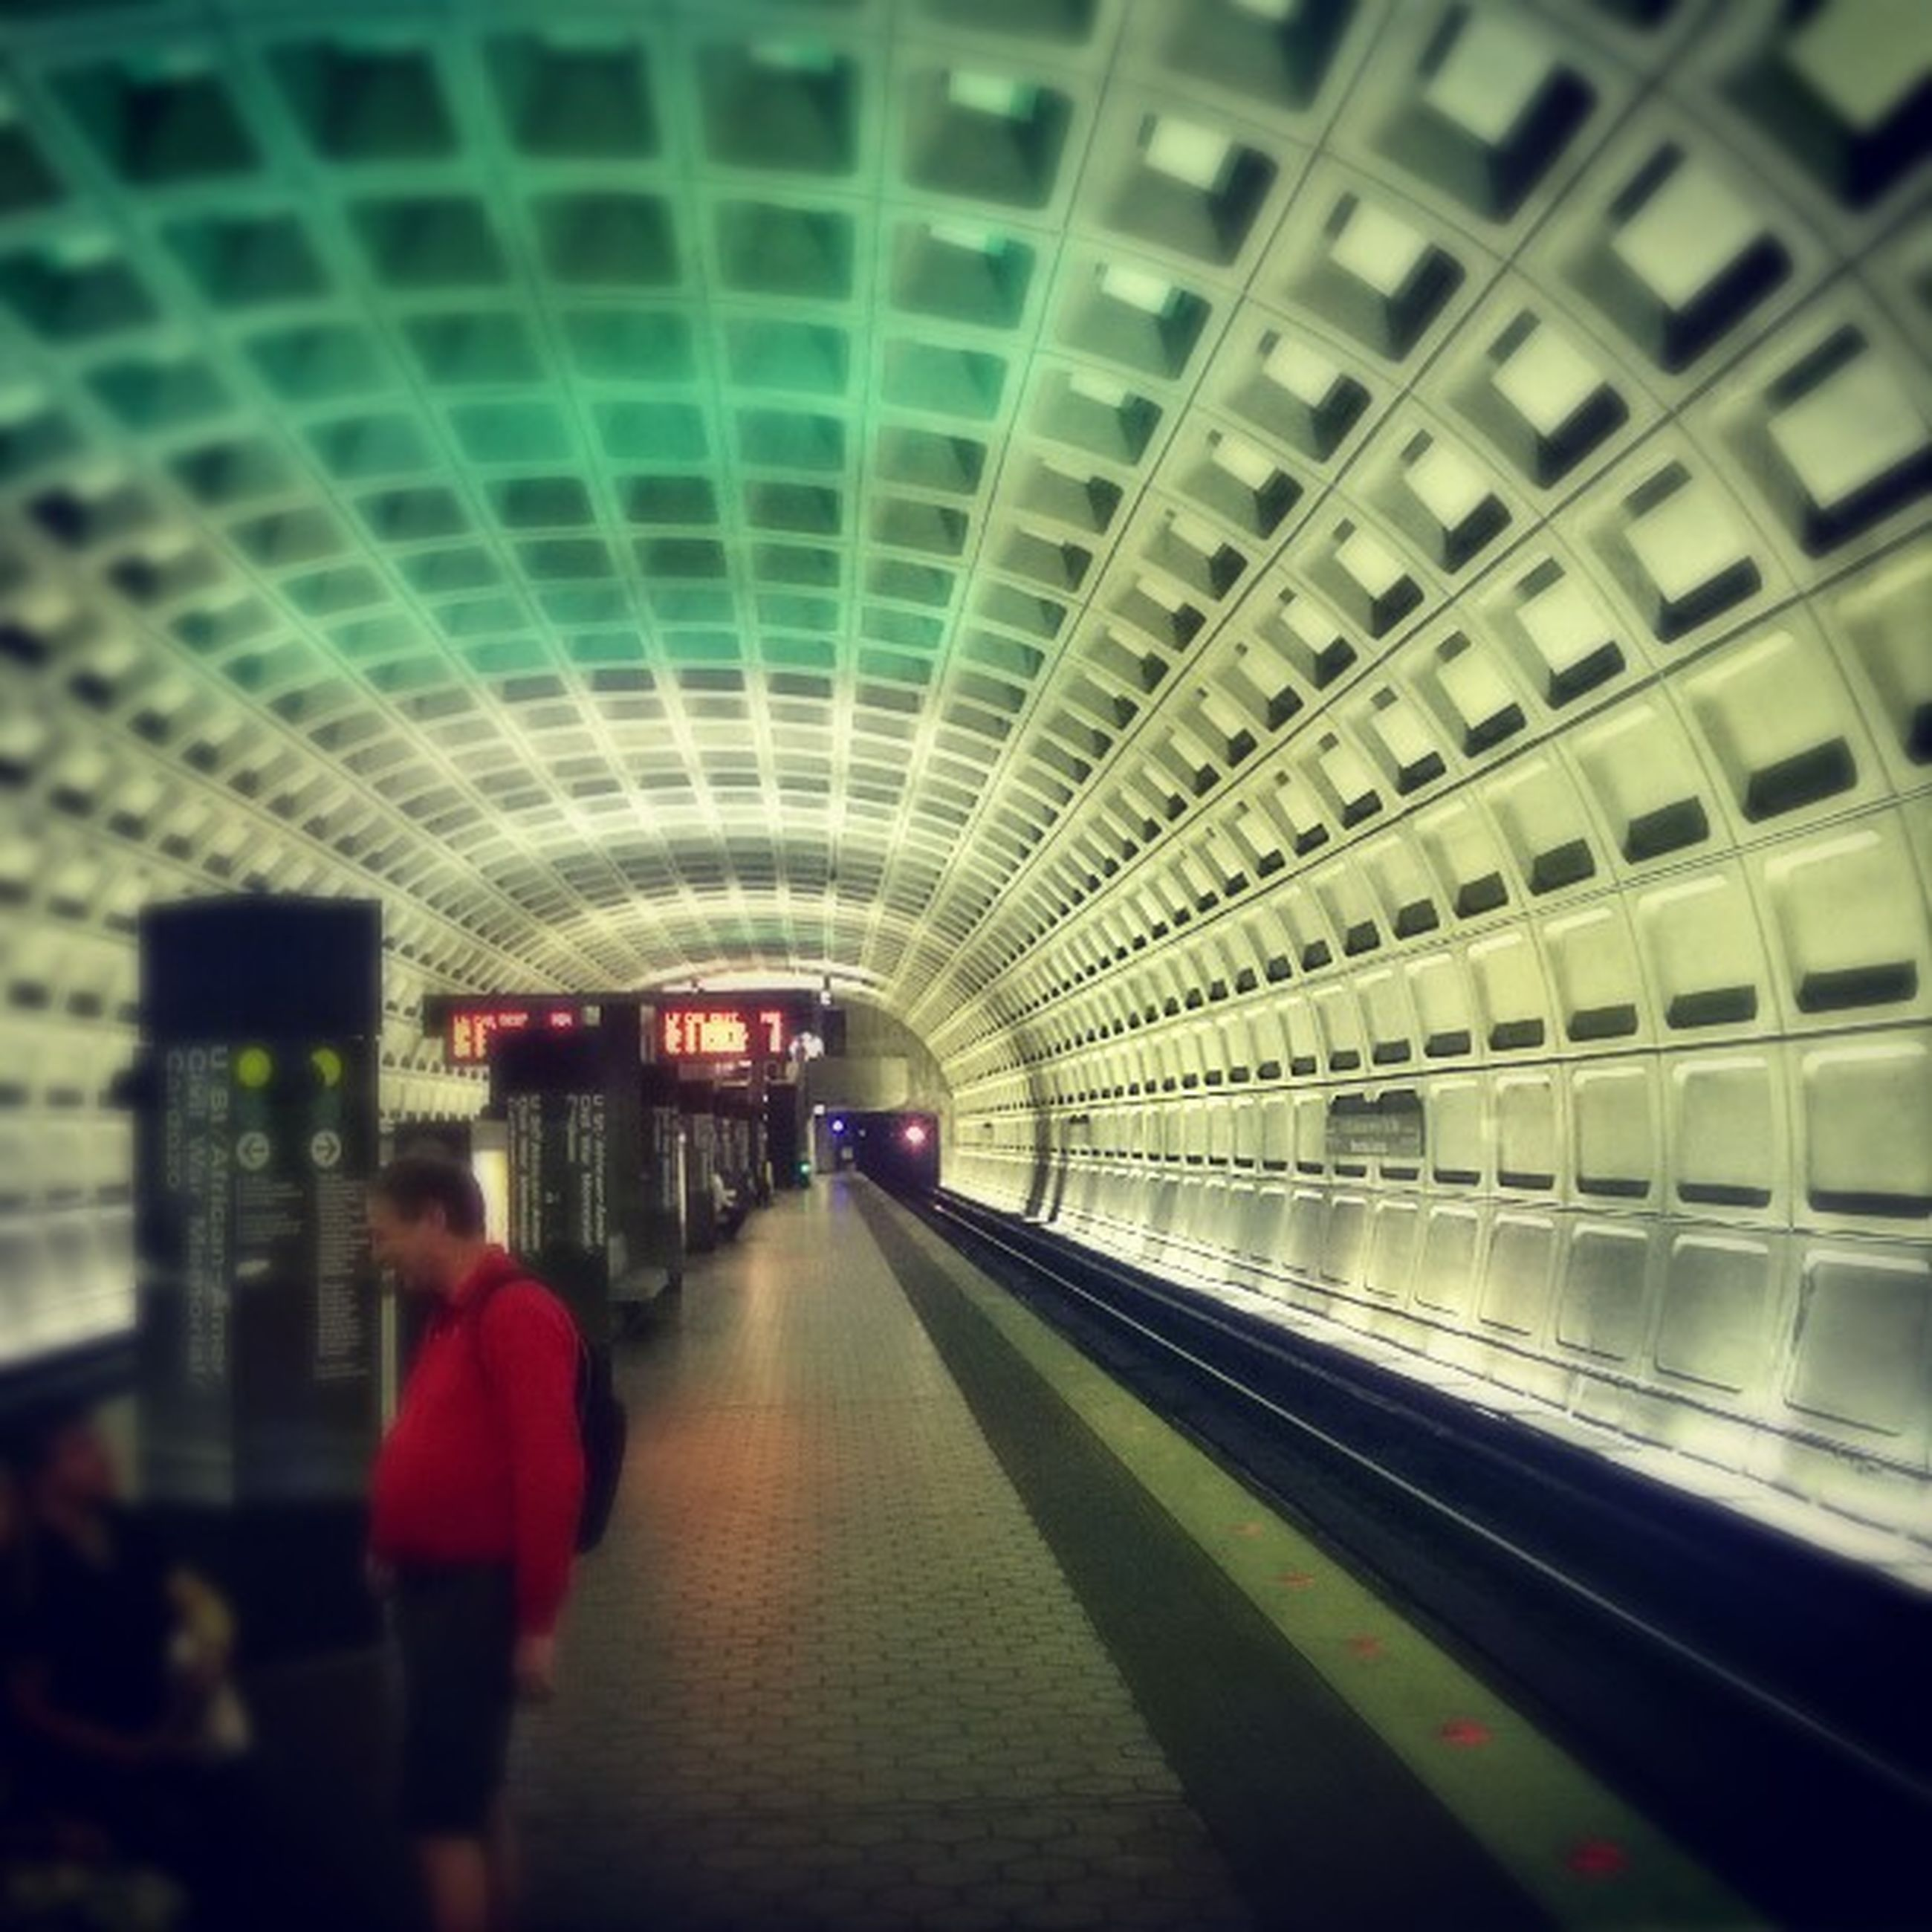 indoors, transportation, architecture, the way forward, built structure, walking, rear view, men, railroad station, railroad station platform, lifestyles, tunnel, diminishing perspective, travel, illuminated, public transportation, ceiling, full length